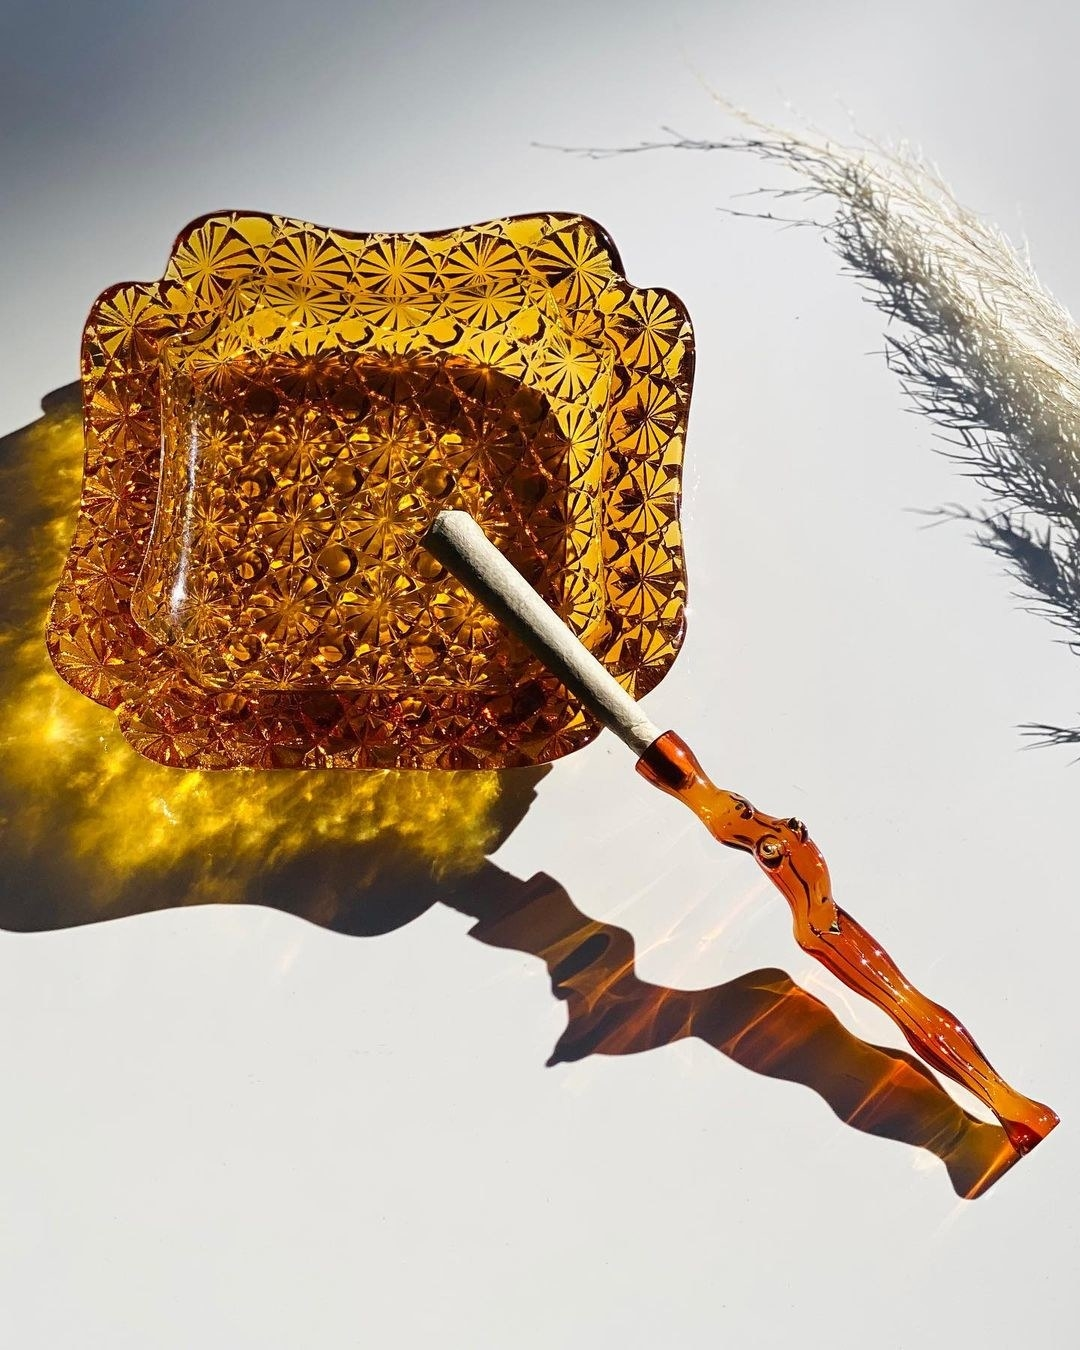 the glass joint holder in amber